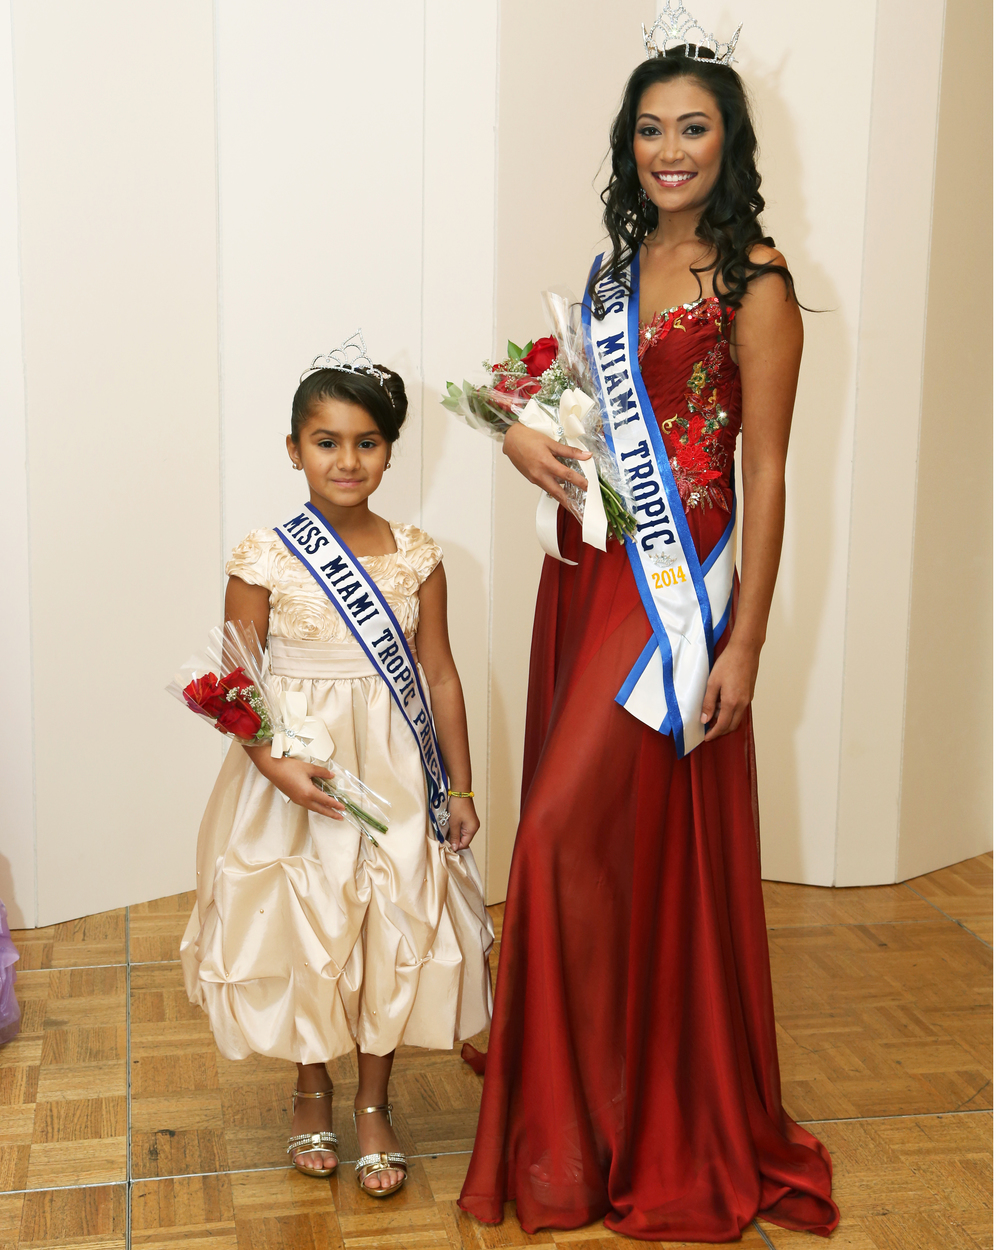 Briseis Rodriguez  miss miami tropic princess 2014          with the  Miss miami tropic queen